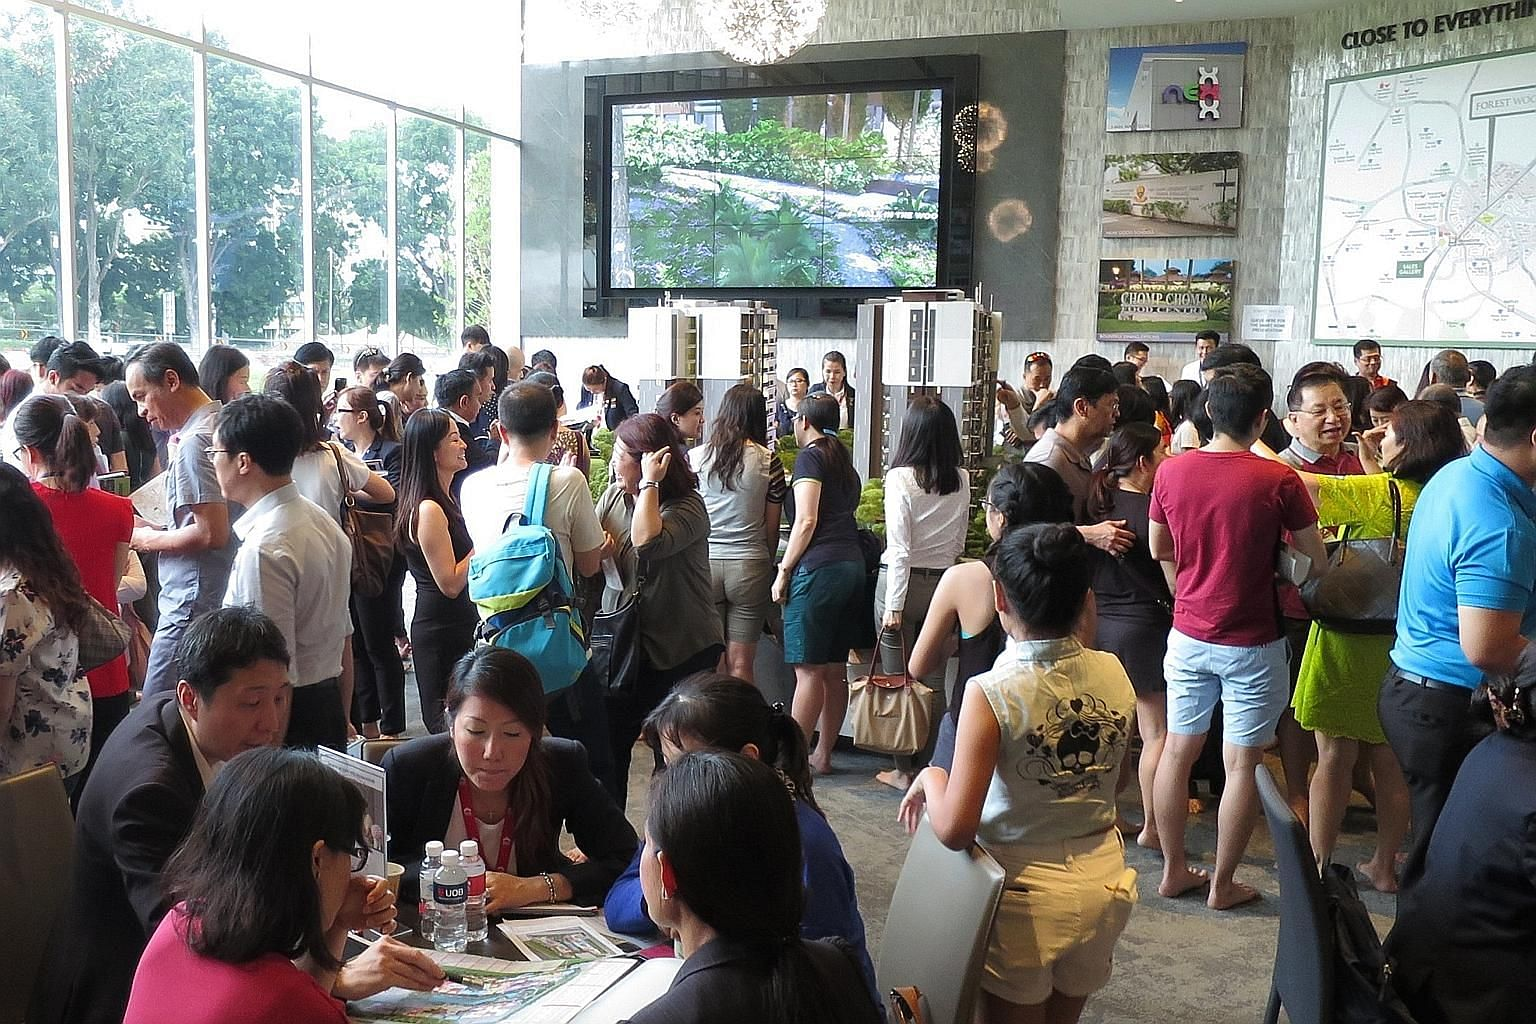 Crowds were drawn to the Forest Woods showflat preview, which started last weekend, due to the development's attractive location and pricing.